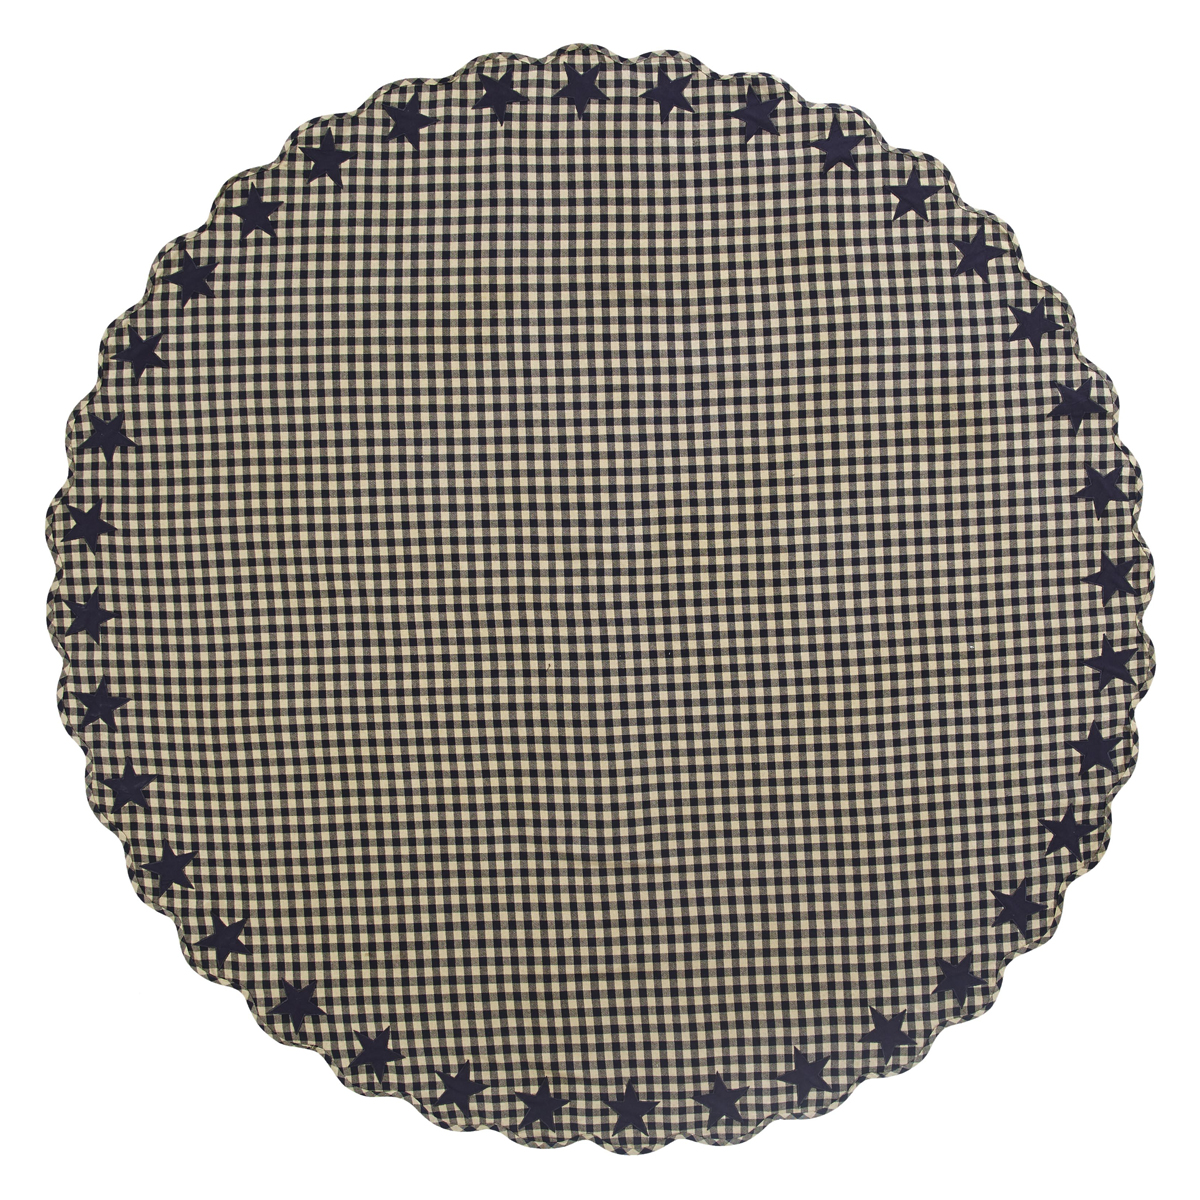 "BLACK STAR Scalloped Table Cloth - 70"" Round - Farmhouse Black/Tan - VHC Brands"